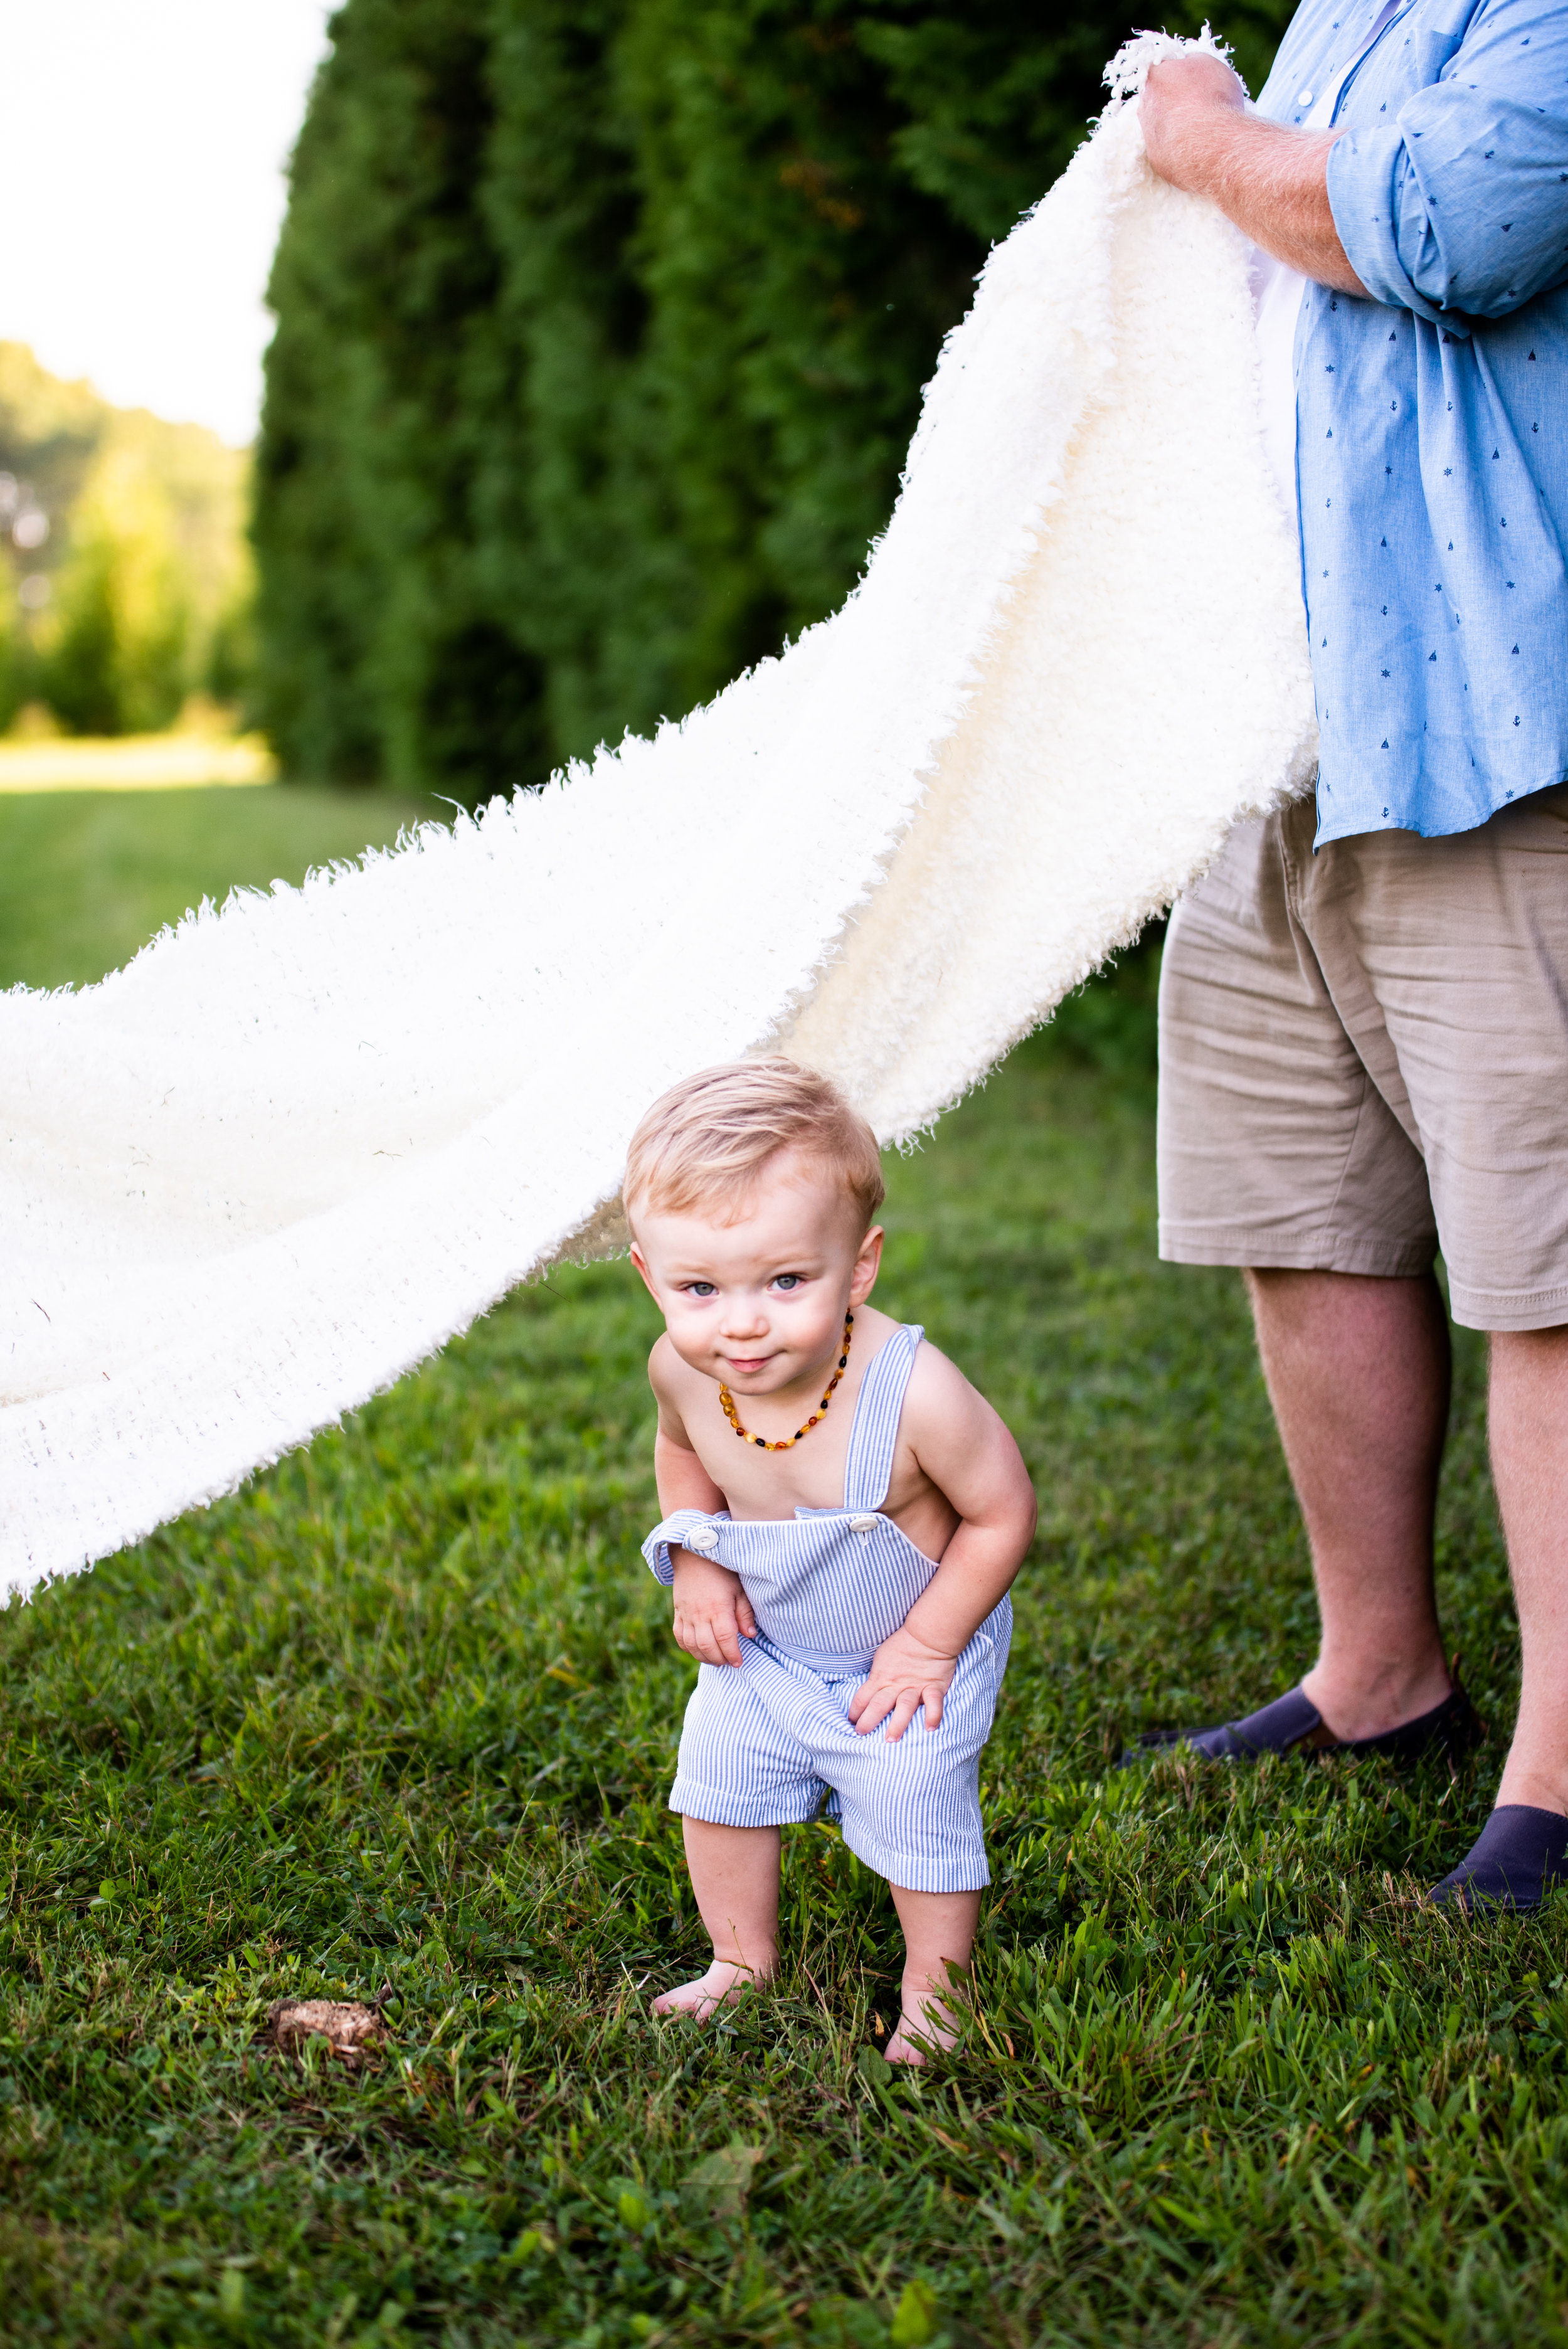 Kyla Jo Photography Muncie Indiana Playful Prompts with Children // Bib Overall Outfit